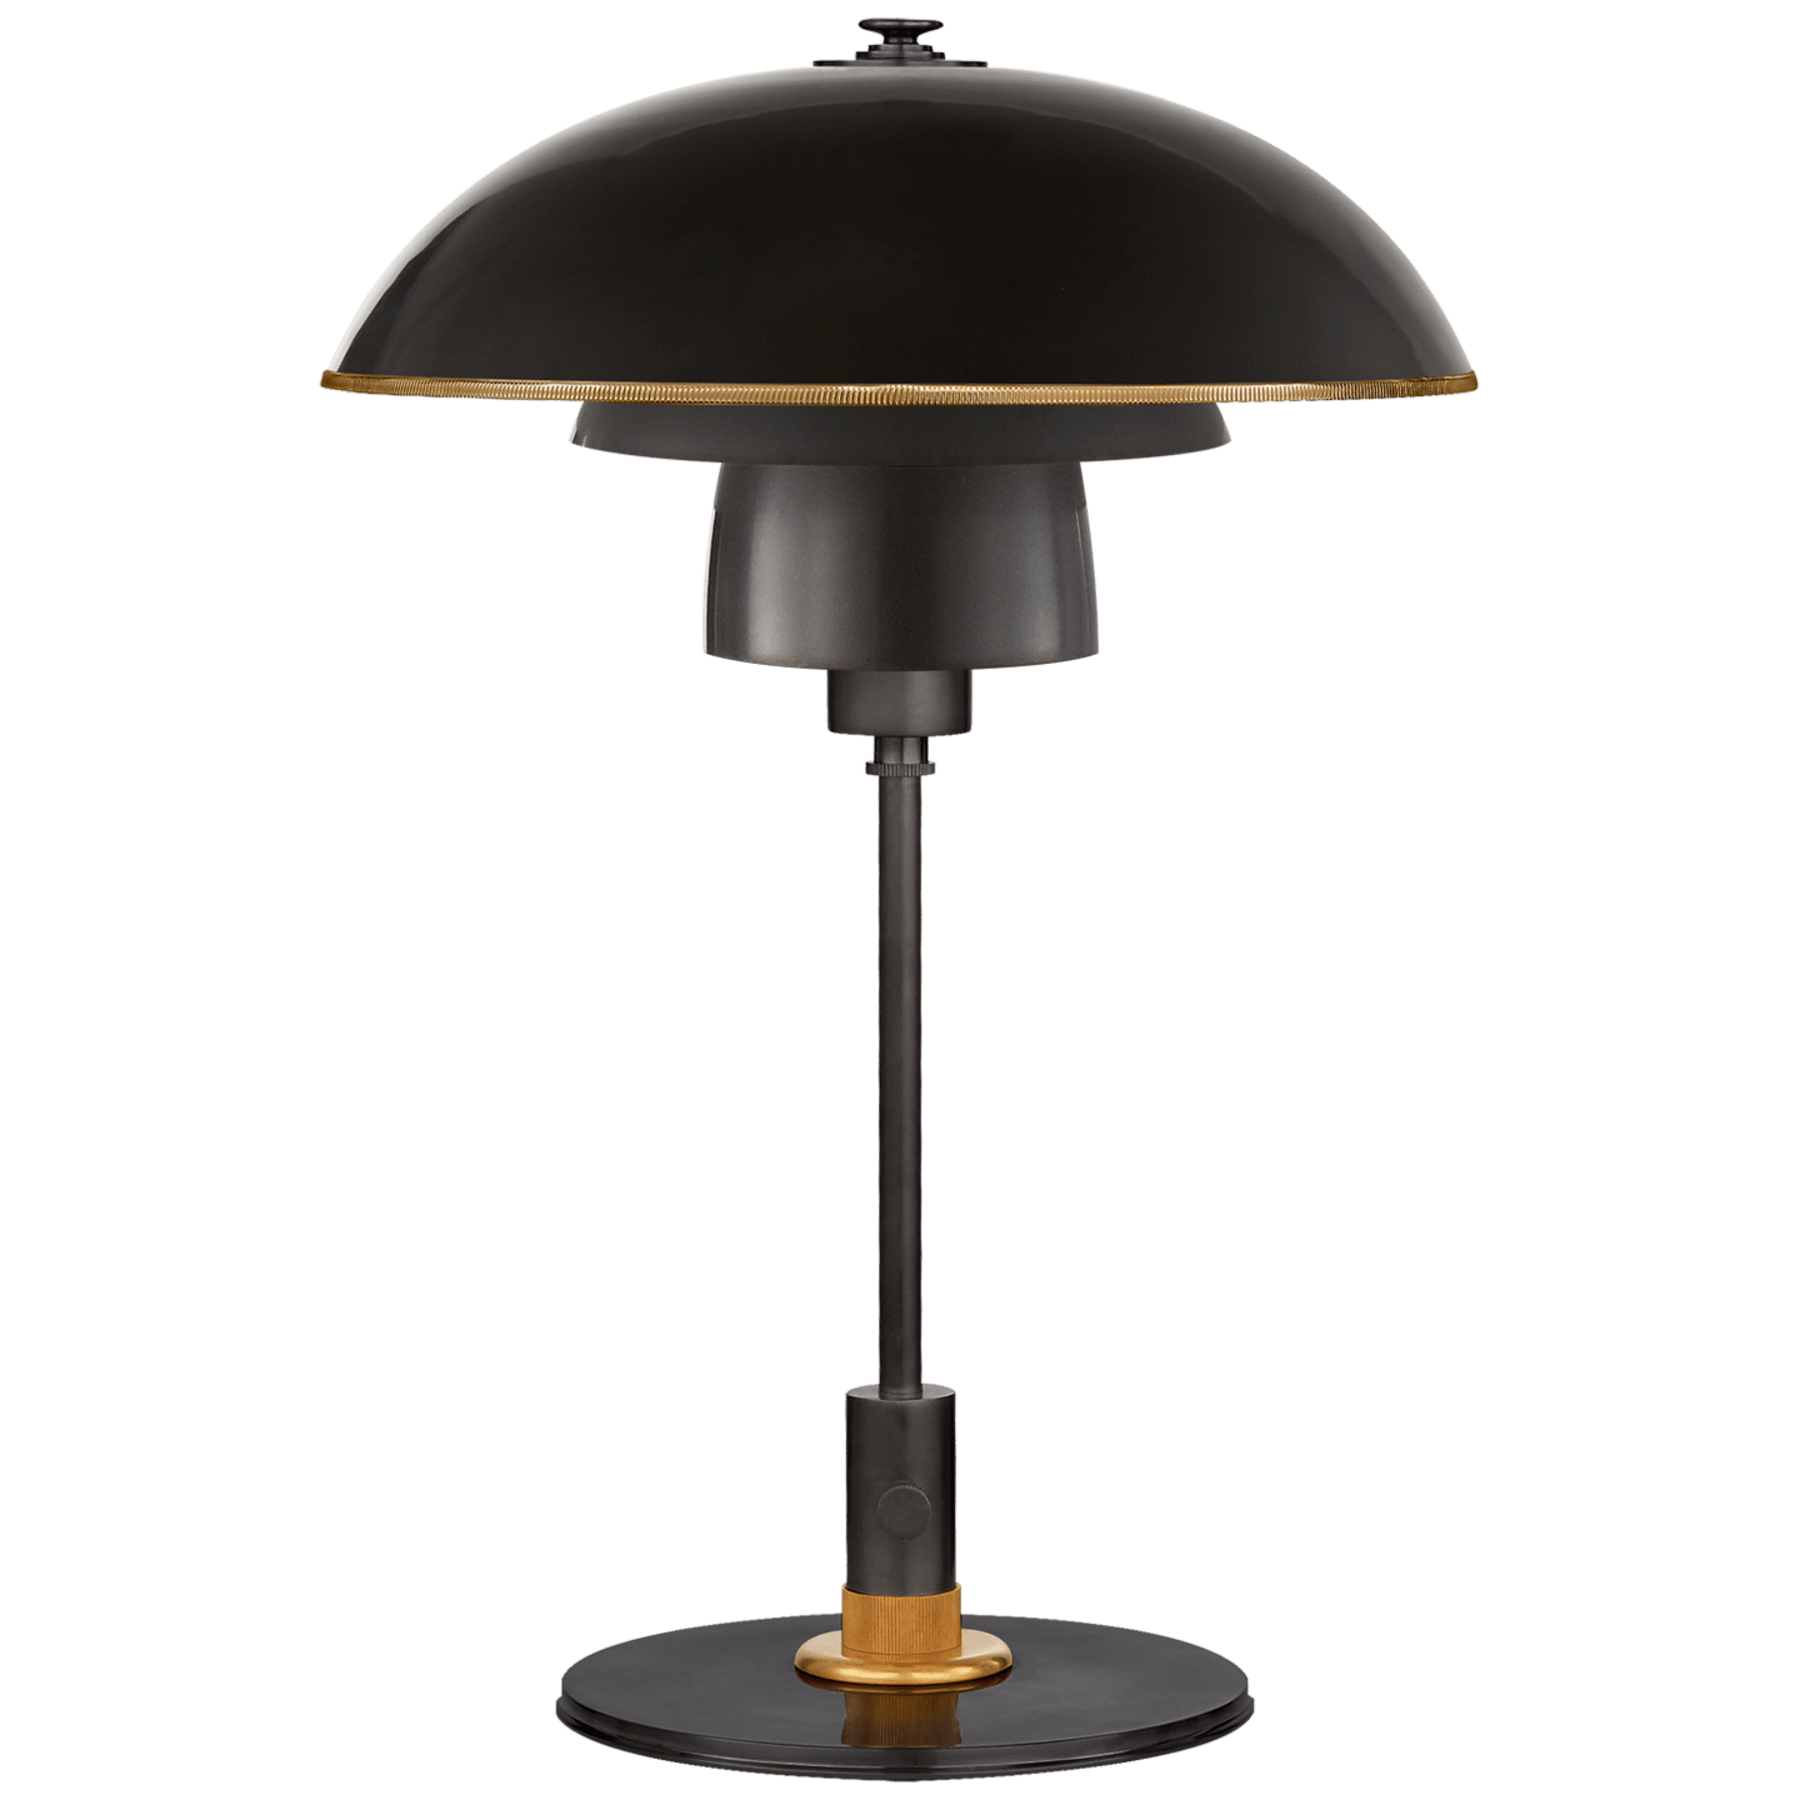 Whitman Desk Lamp Decorative Table Circa Lighting